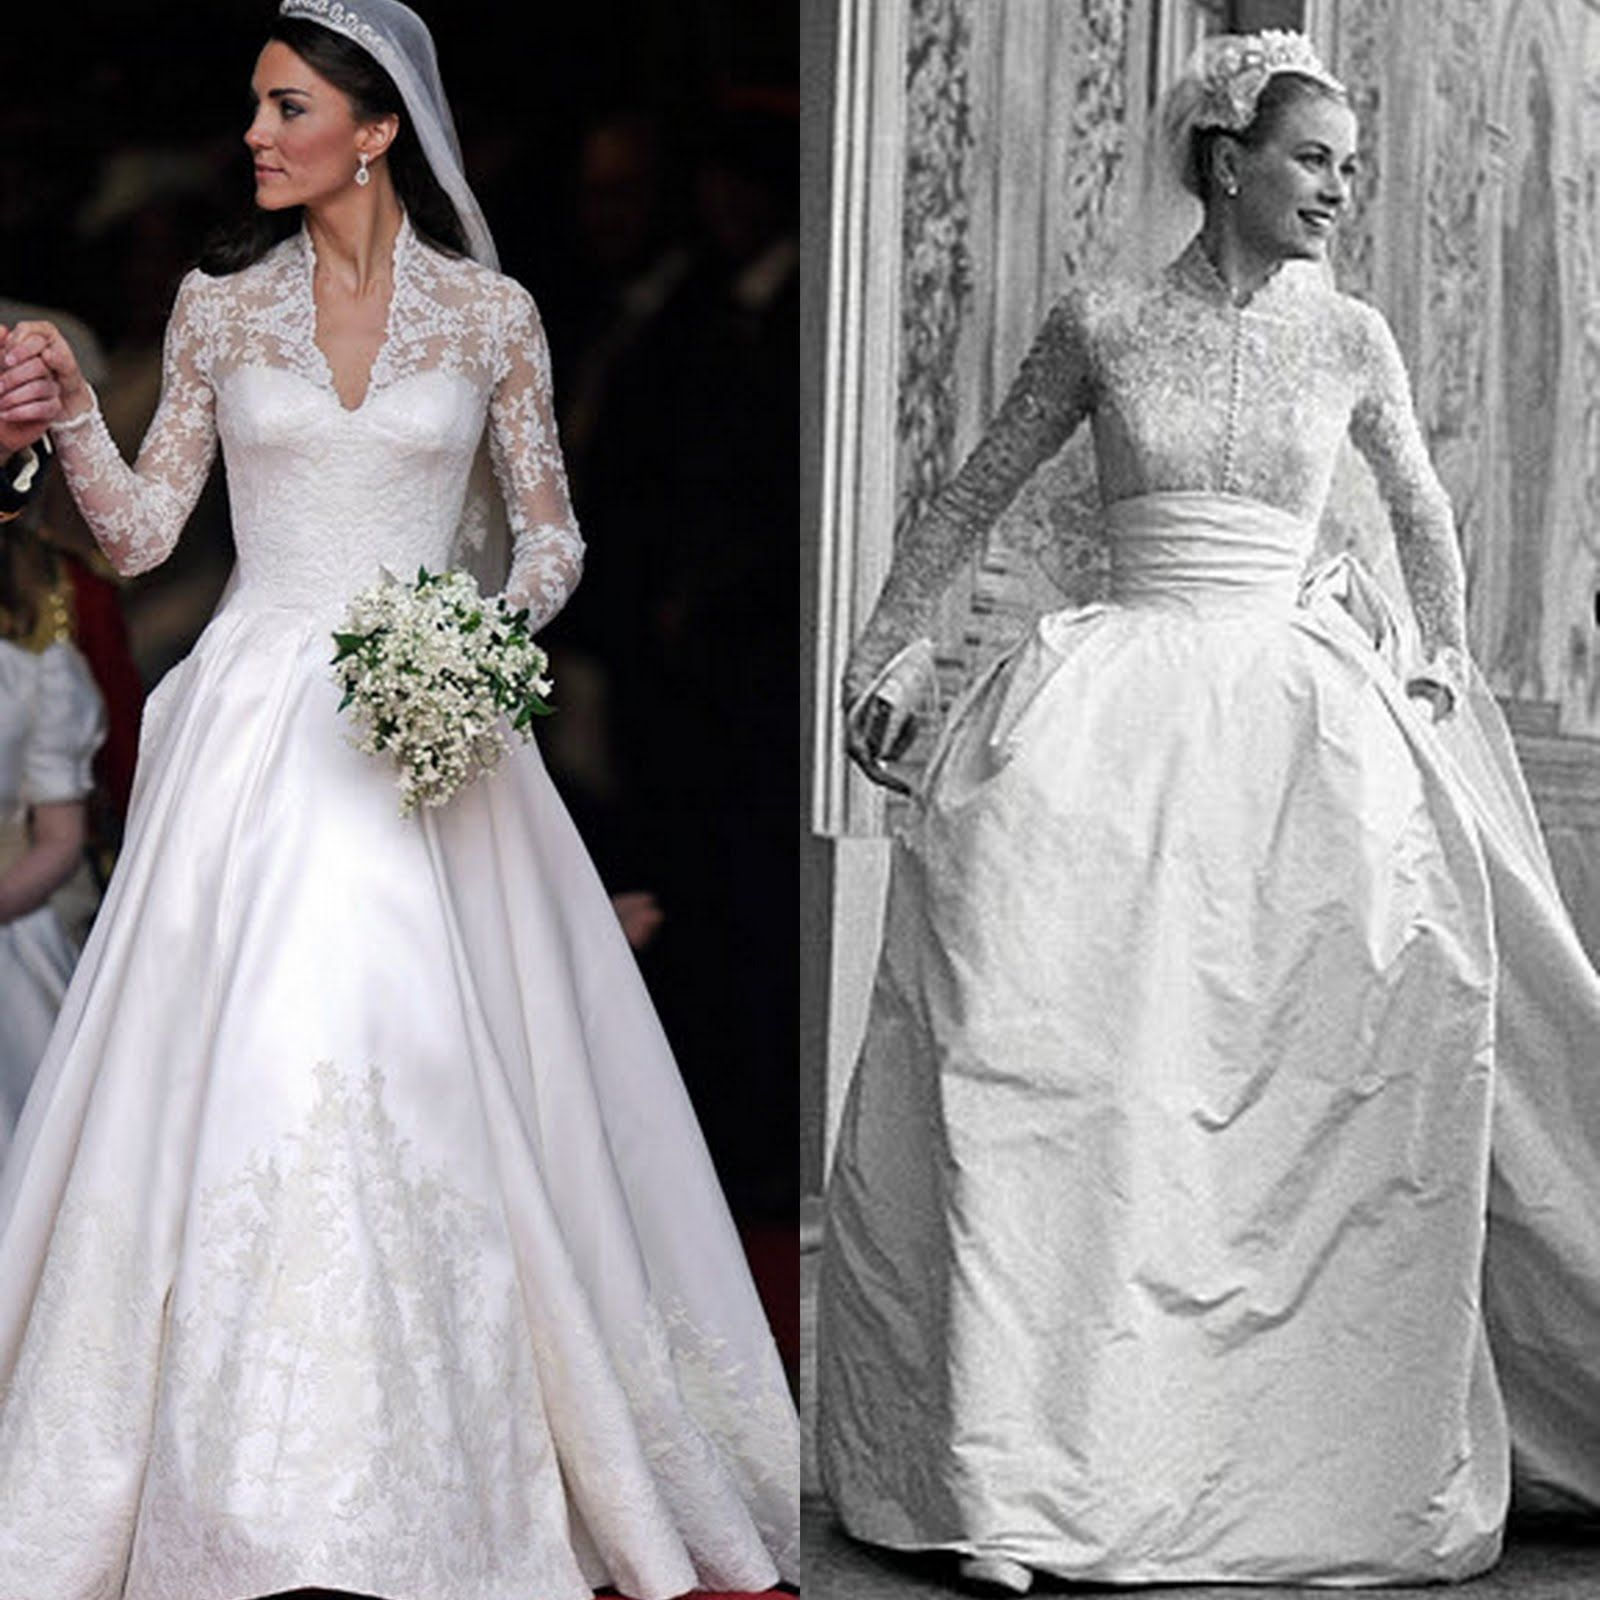 Was kate middleton 39 s dress inspired by grace kelly for Kate middleton wedding dress where to buy